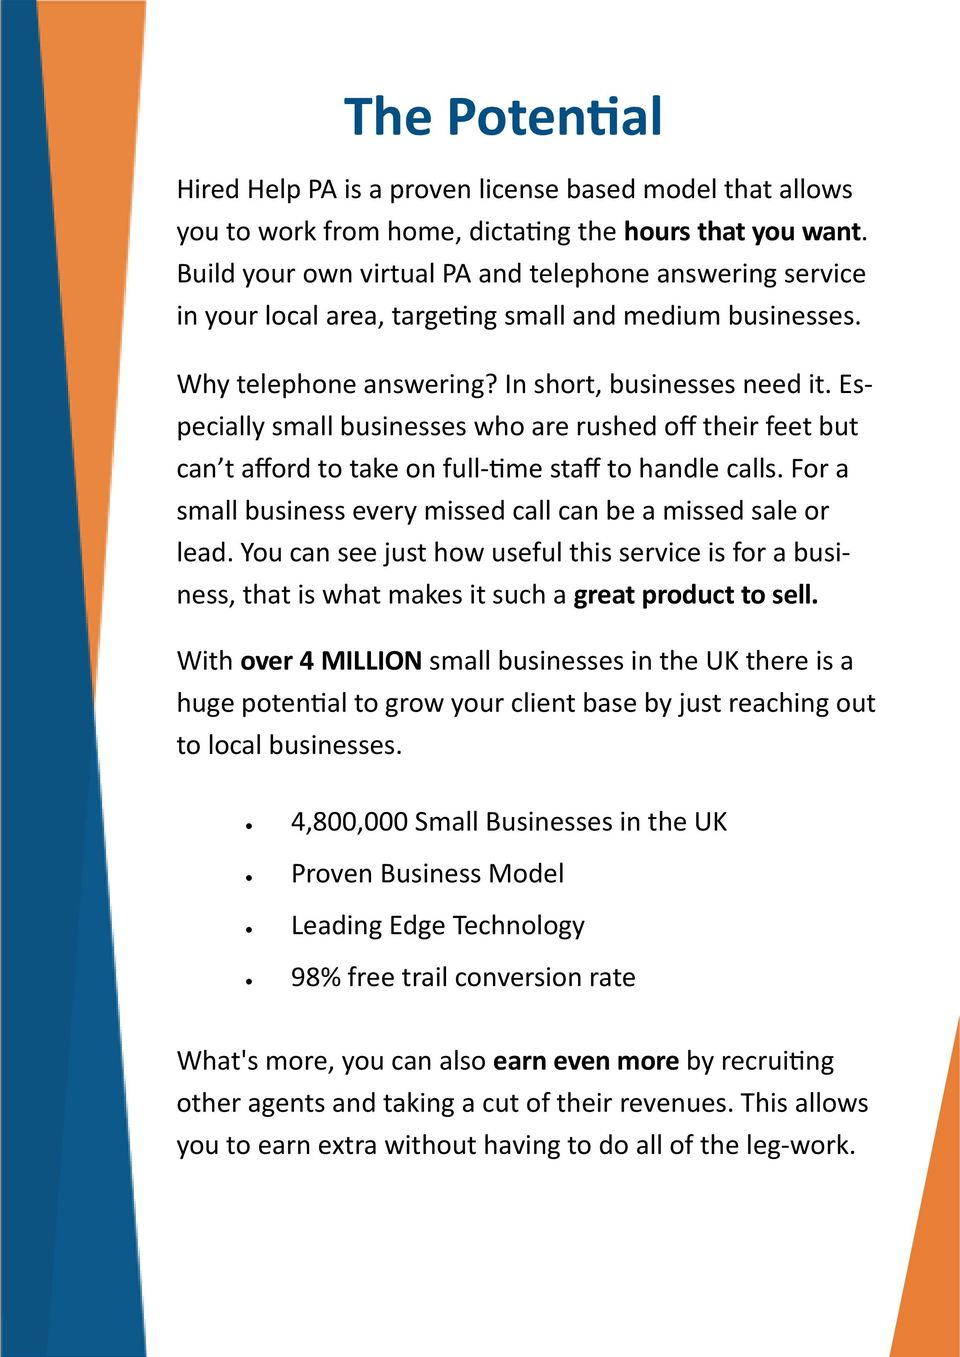 Especially small businesses who are rushed off their feet but can t afford to take on full-time staff to handle calls. For a small business every missed call can be a missed sale or lead.